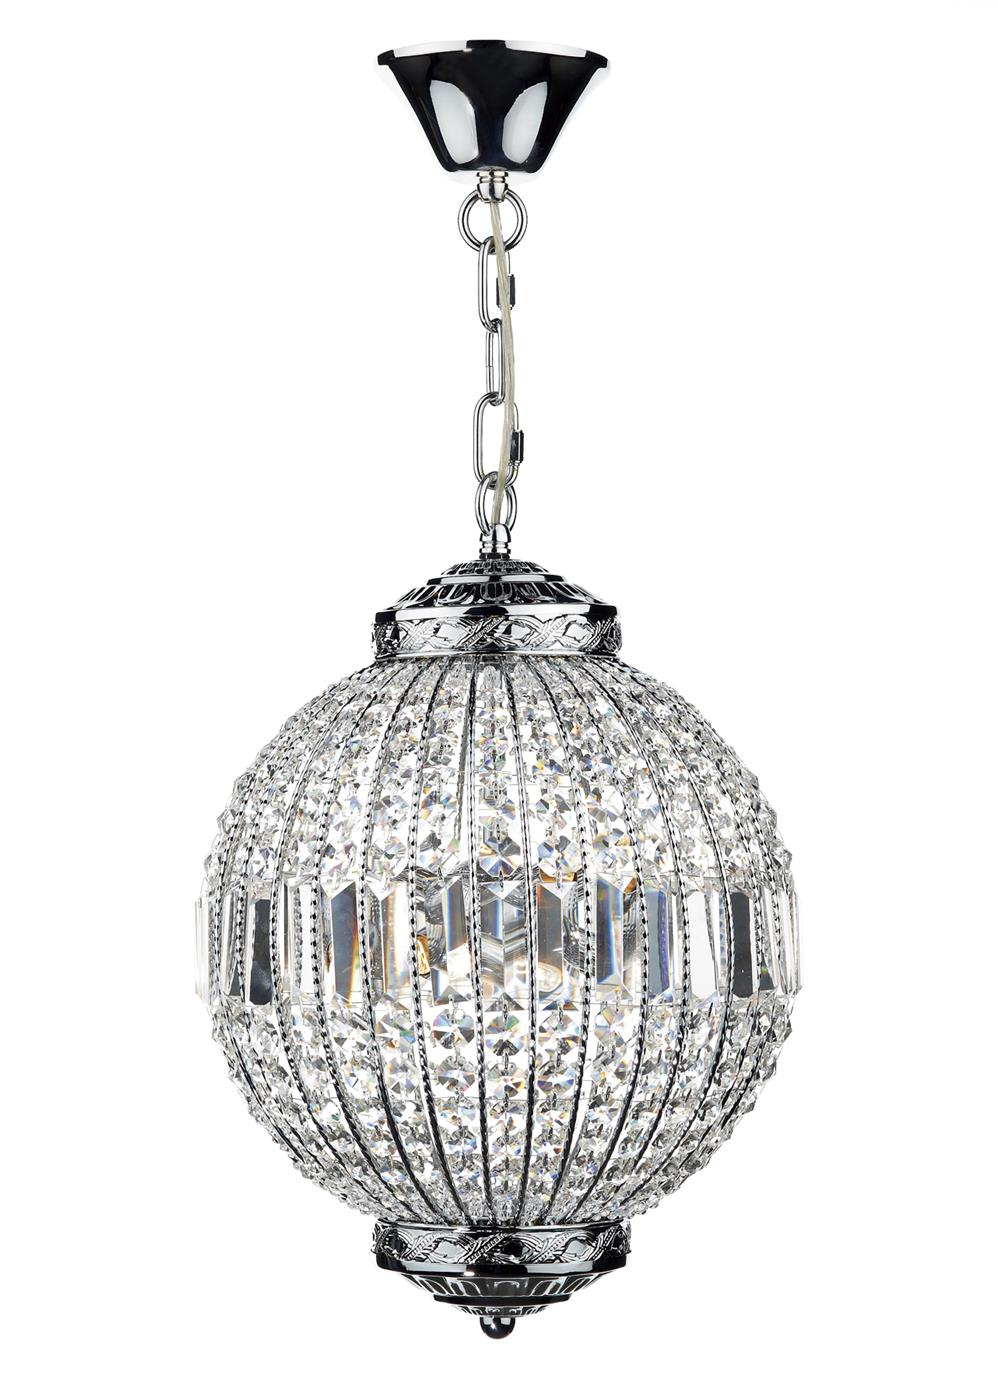 Dar EQU0650 Equator 6 Light Pendant Ball in Chrome